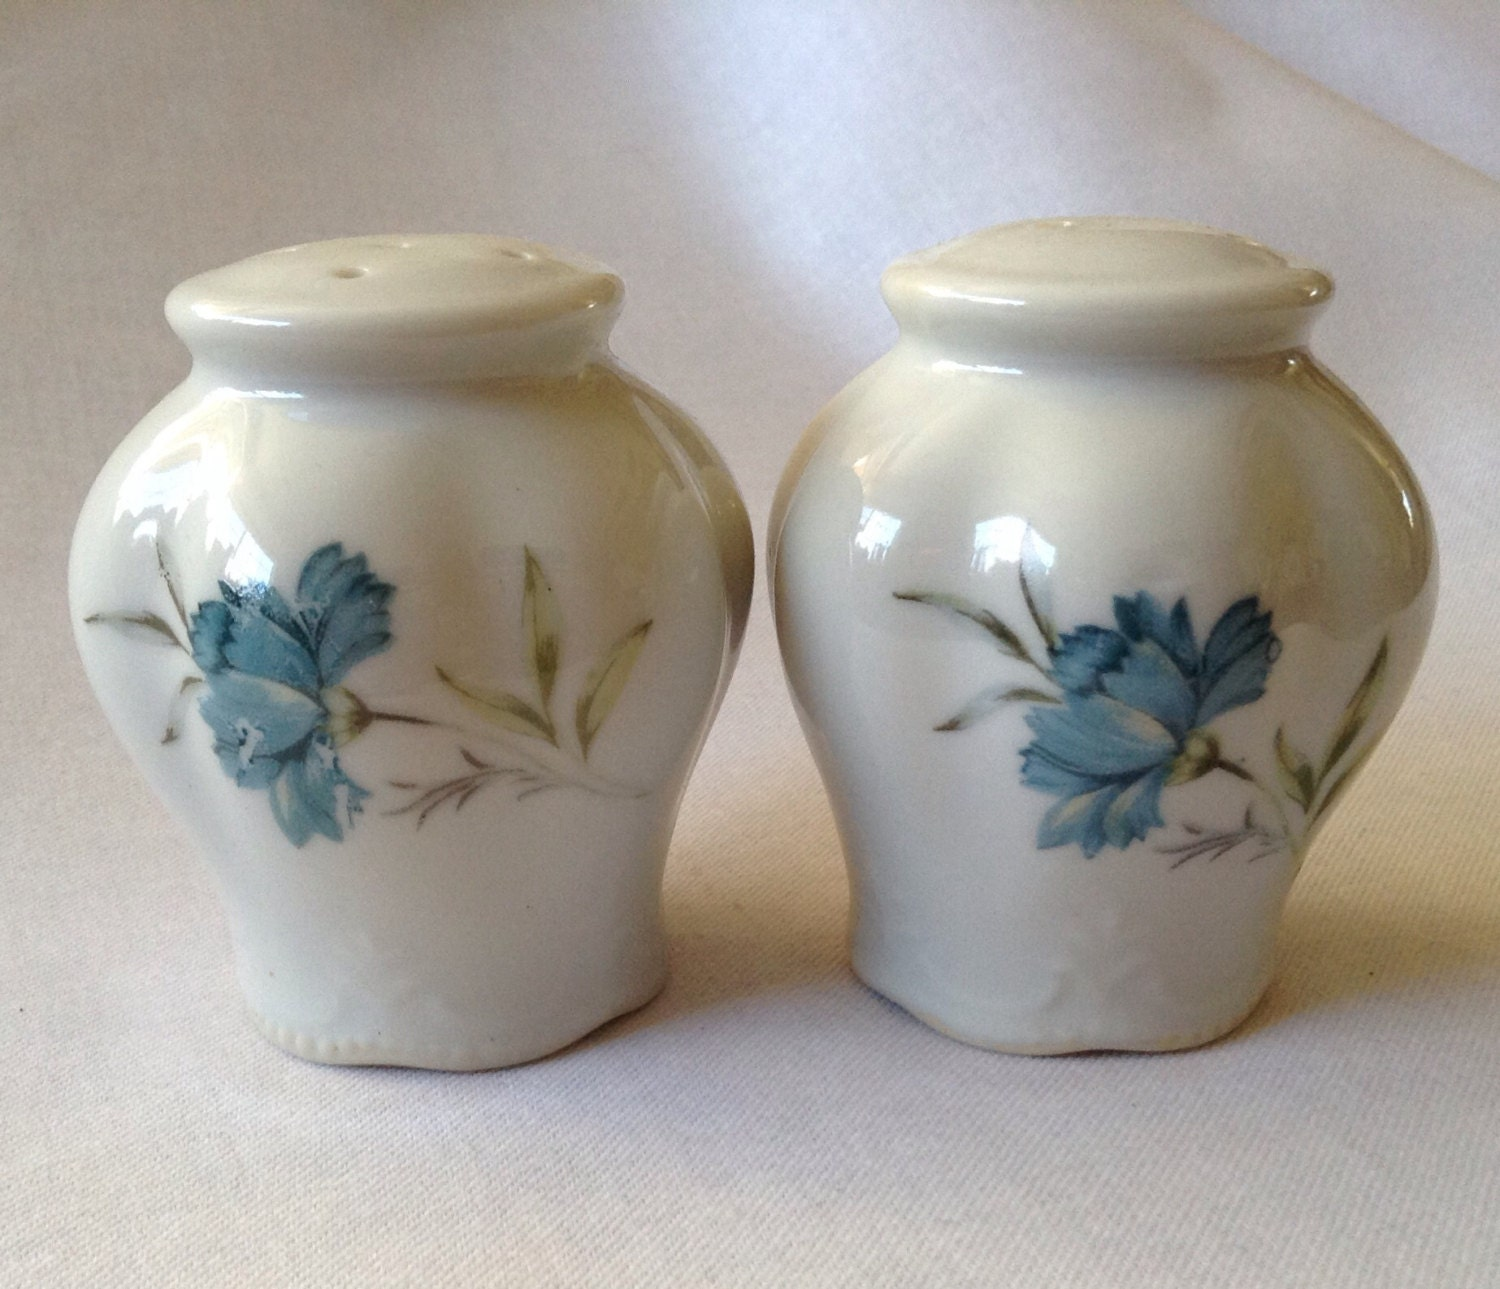 Beautiful Porcelain Salt And Pepper Shakers With Blue Flowers